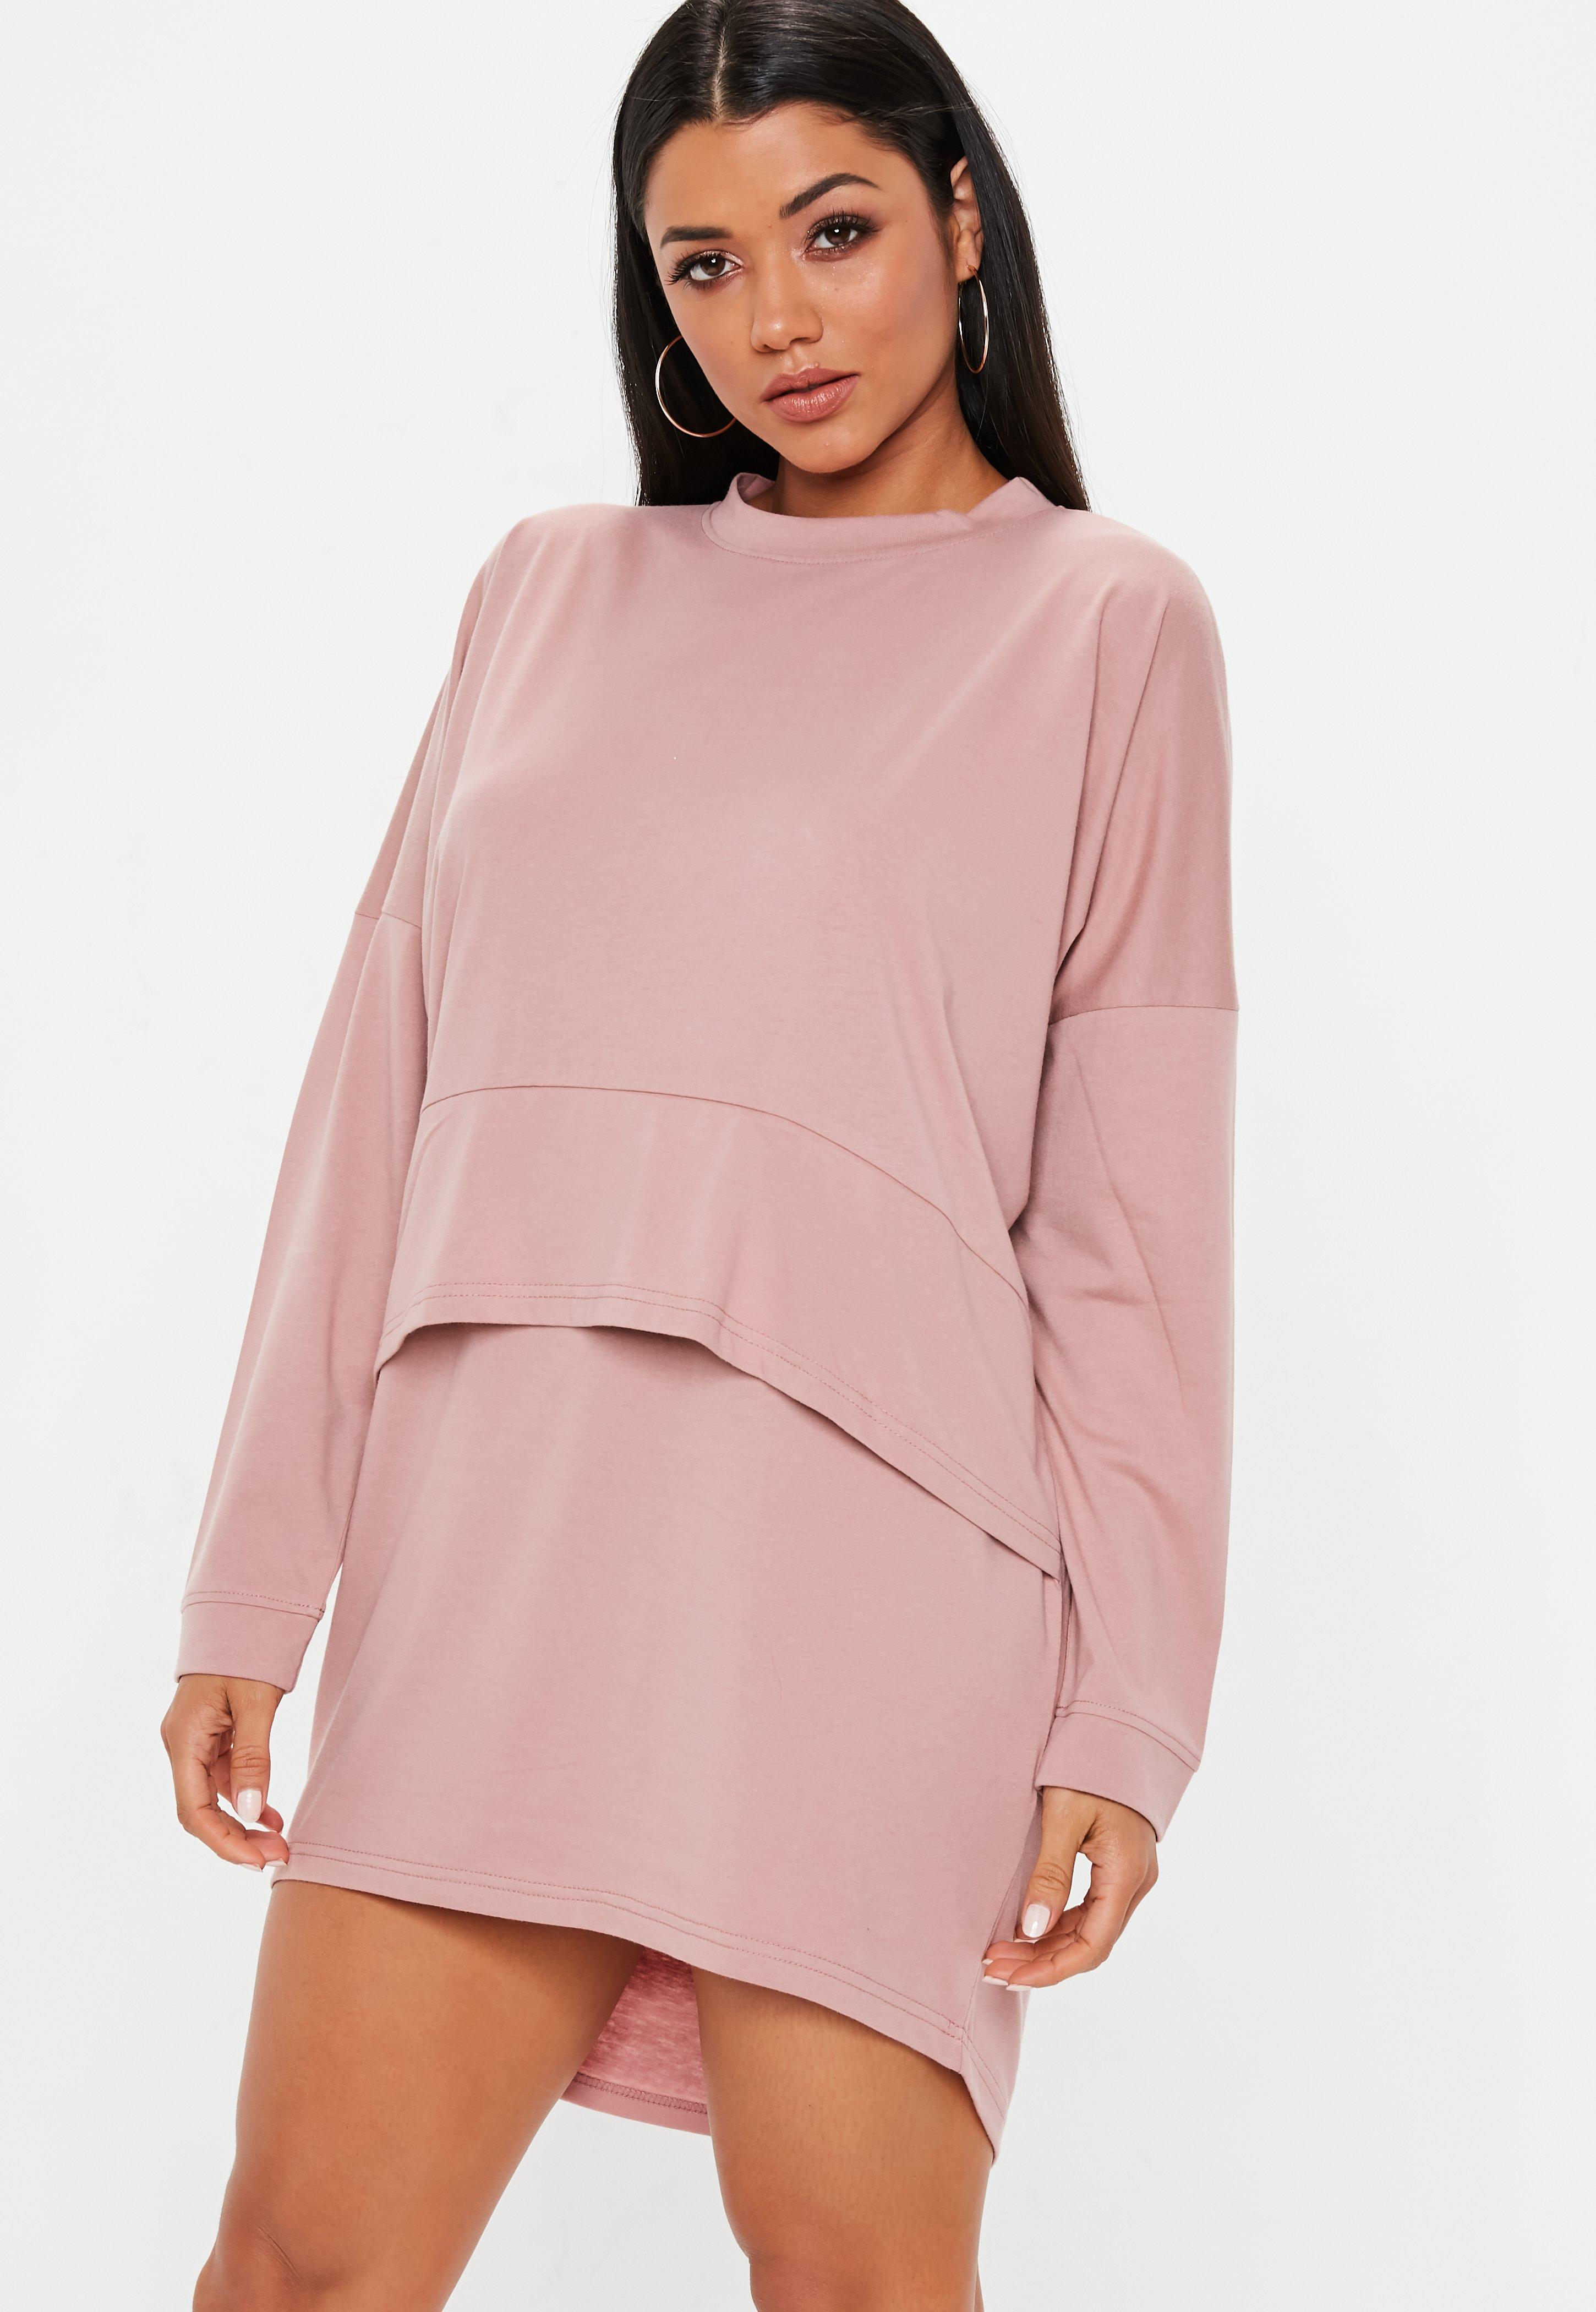 Pink Dresses | Coral & Hot Pink Dresses - Missguided